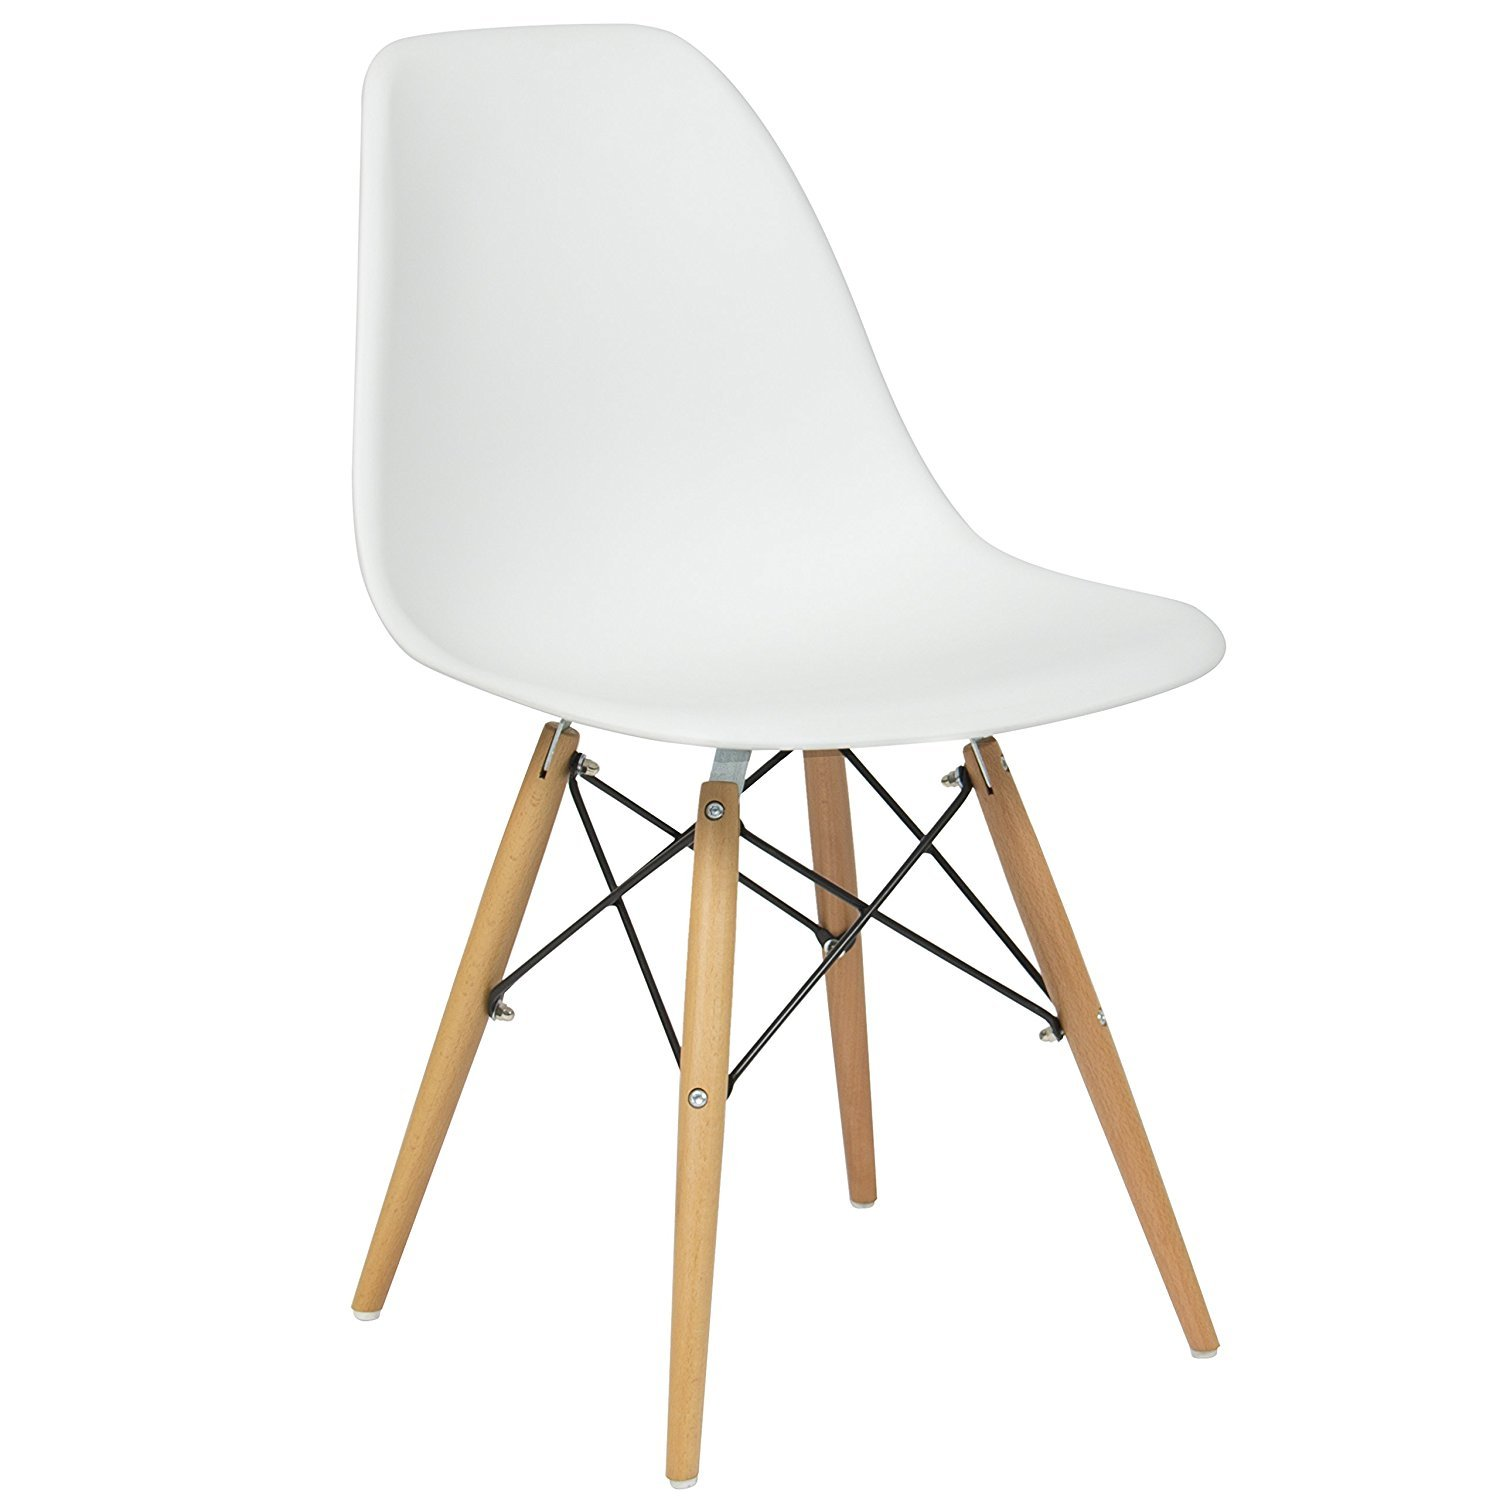 Eames style dining chairs armless accent chairs effiel mid century modern dsw chair with wood dowel legs legs for dining room waiting room bedroom kitchen